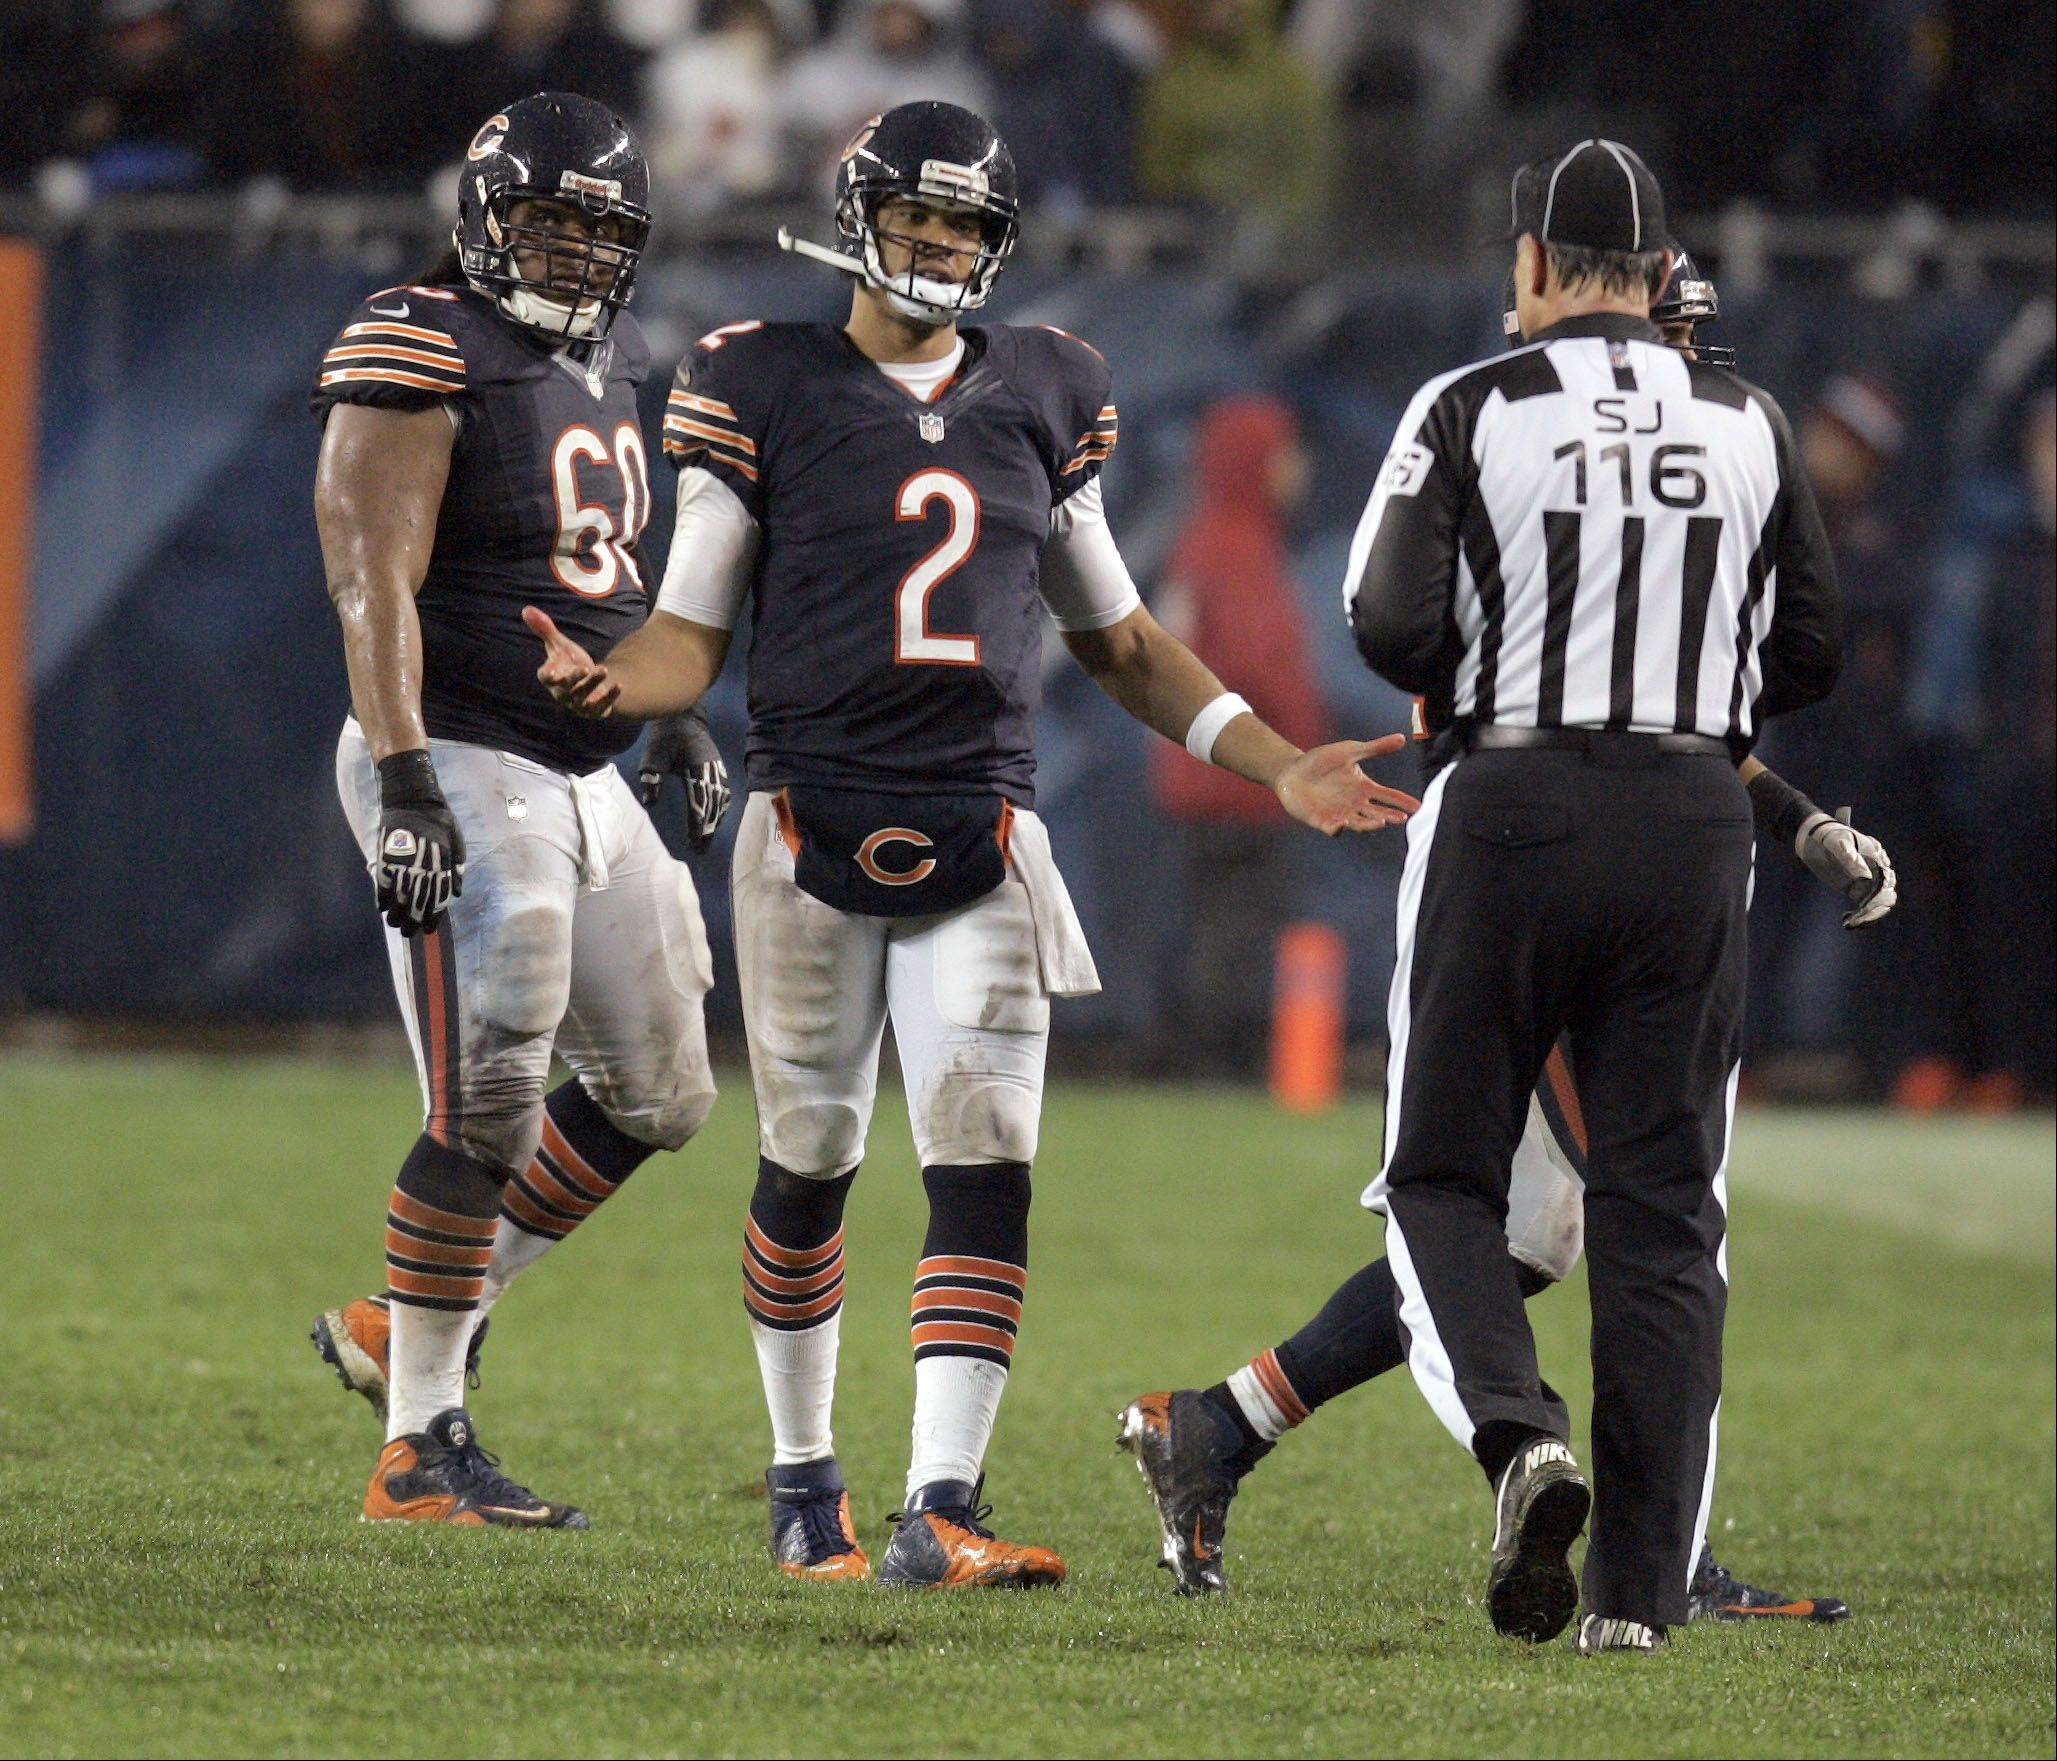 Chicago Bears quarterback Jason Campbell (2) talks to one of the officials late in the fourth quarter.